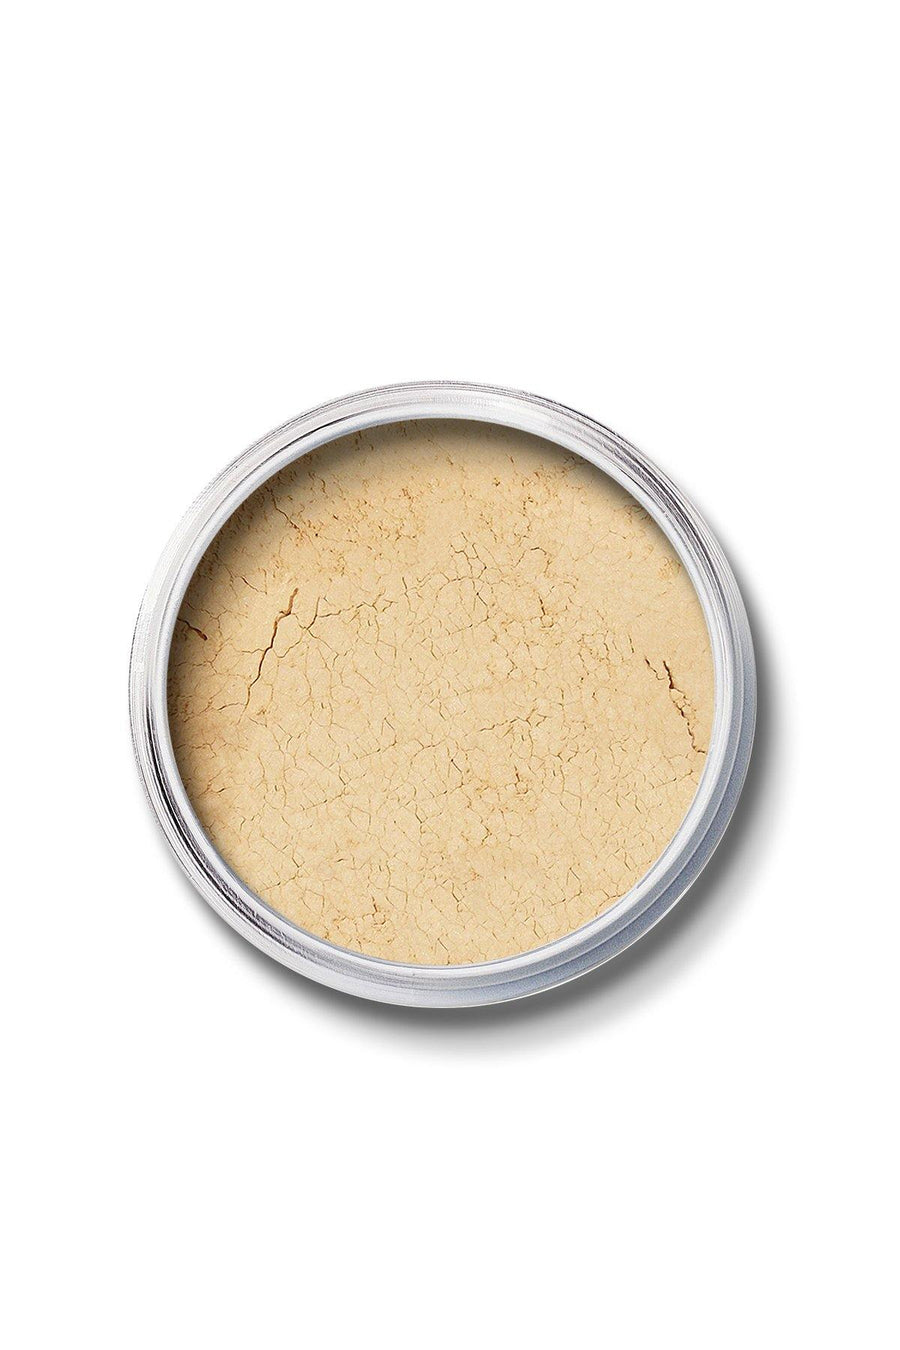 Mineral SPF 15 Foundation #2 - Sunny Beige - Blend Mineral Cosmetics